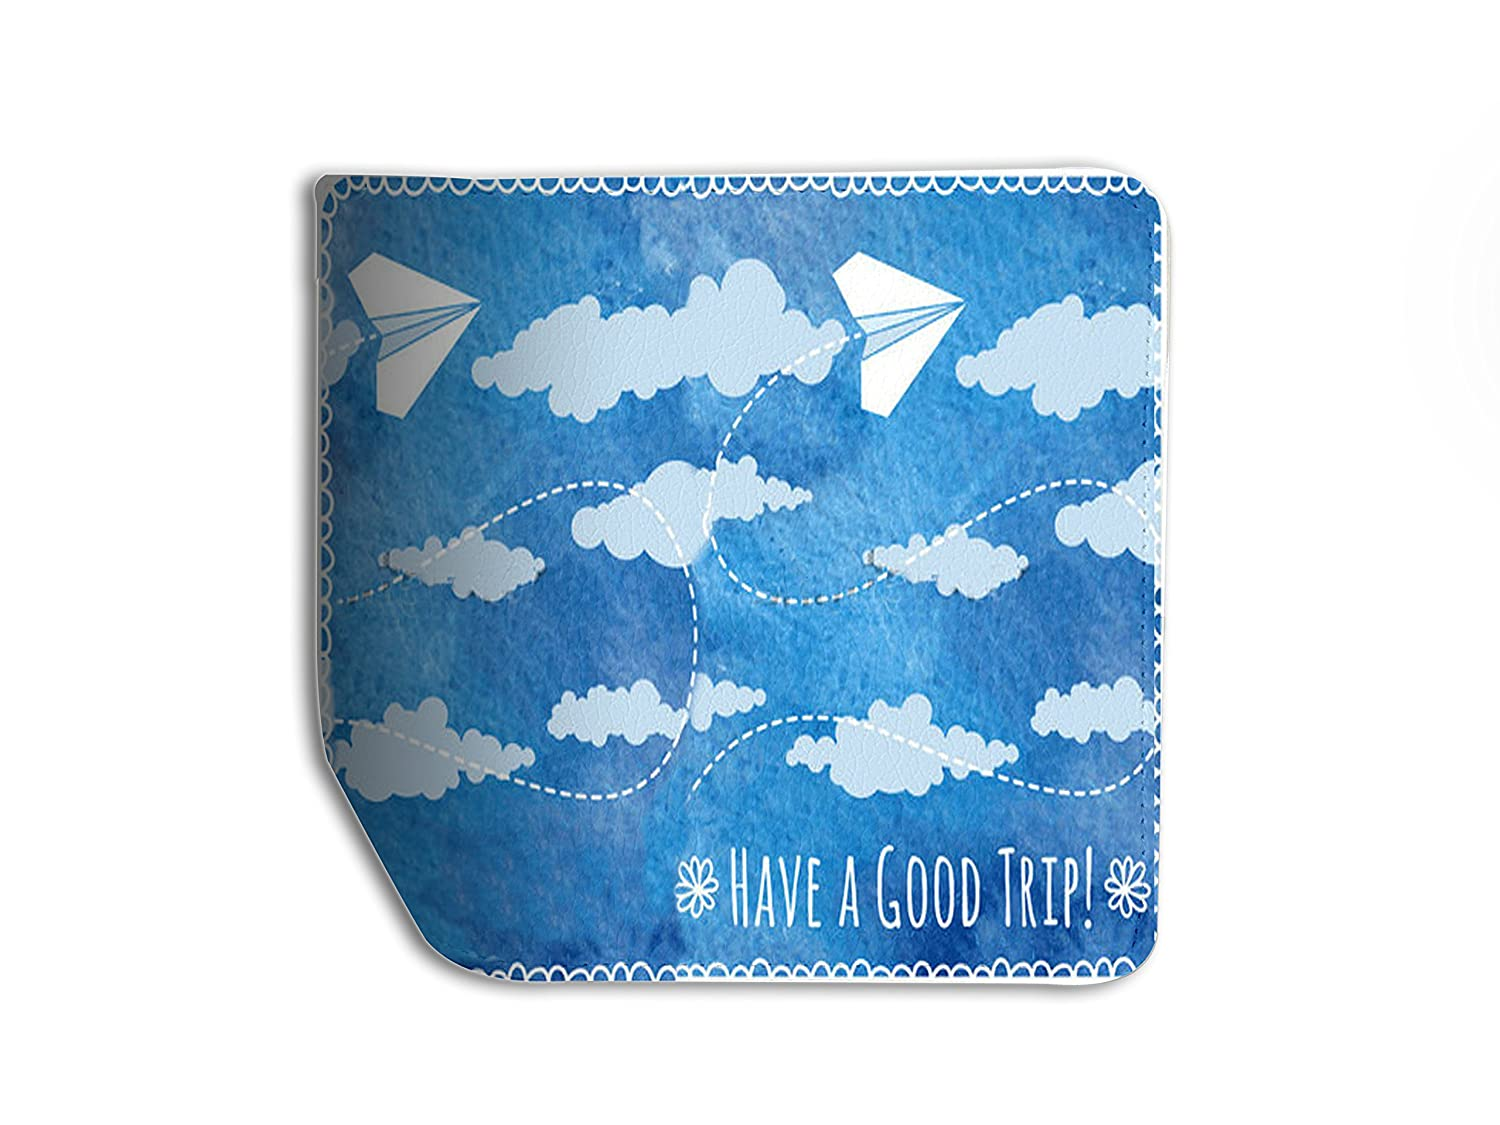 Have A Good Trip Leather Passport Holder Protector Cover/_SUPERTRAMPshop